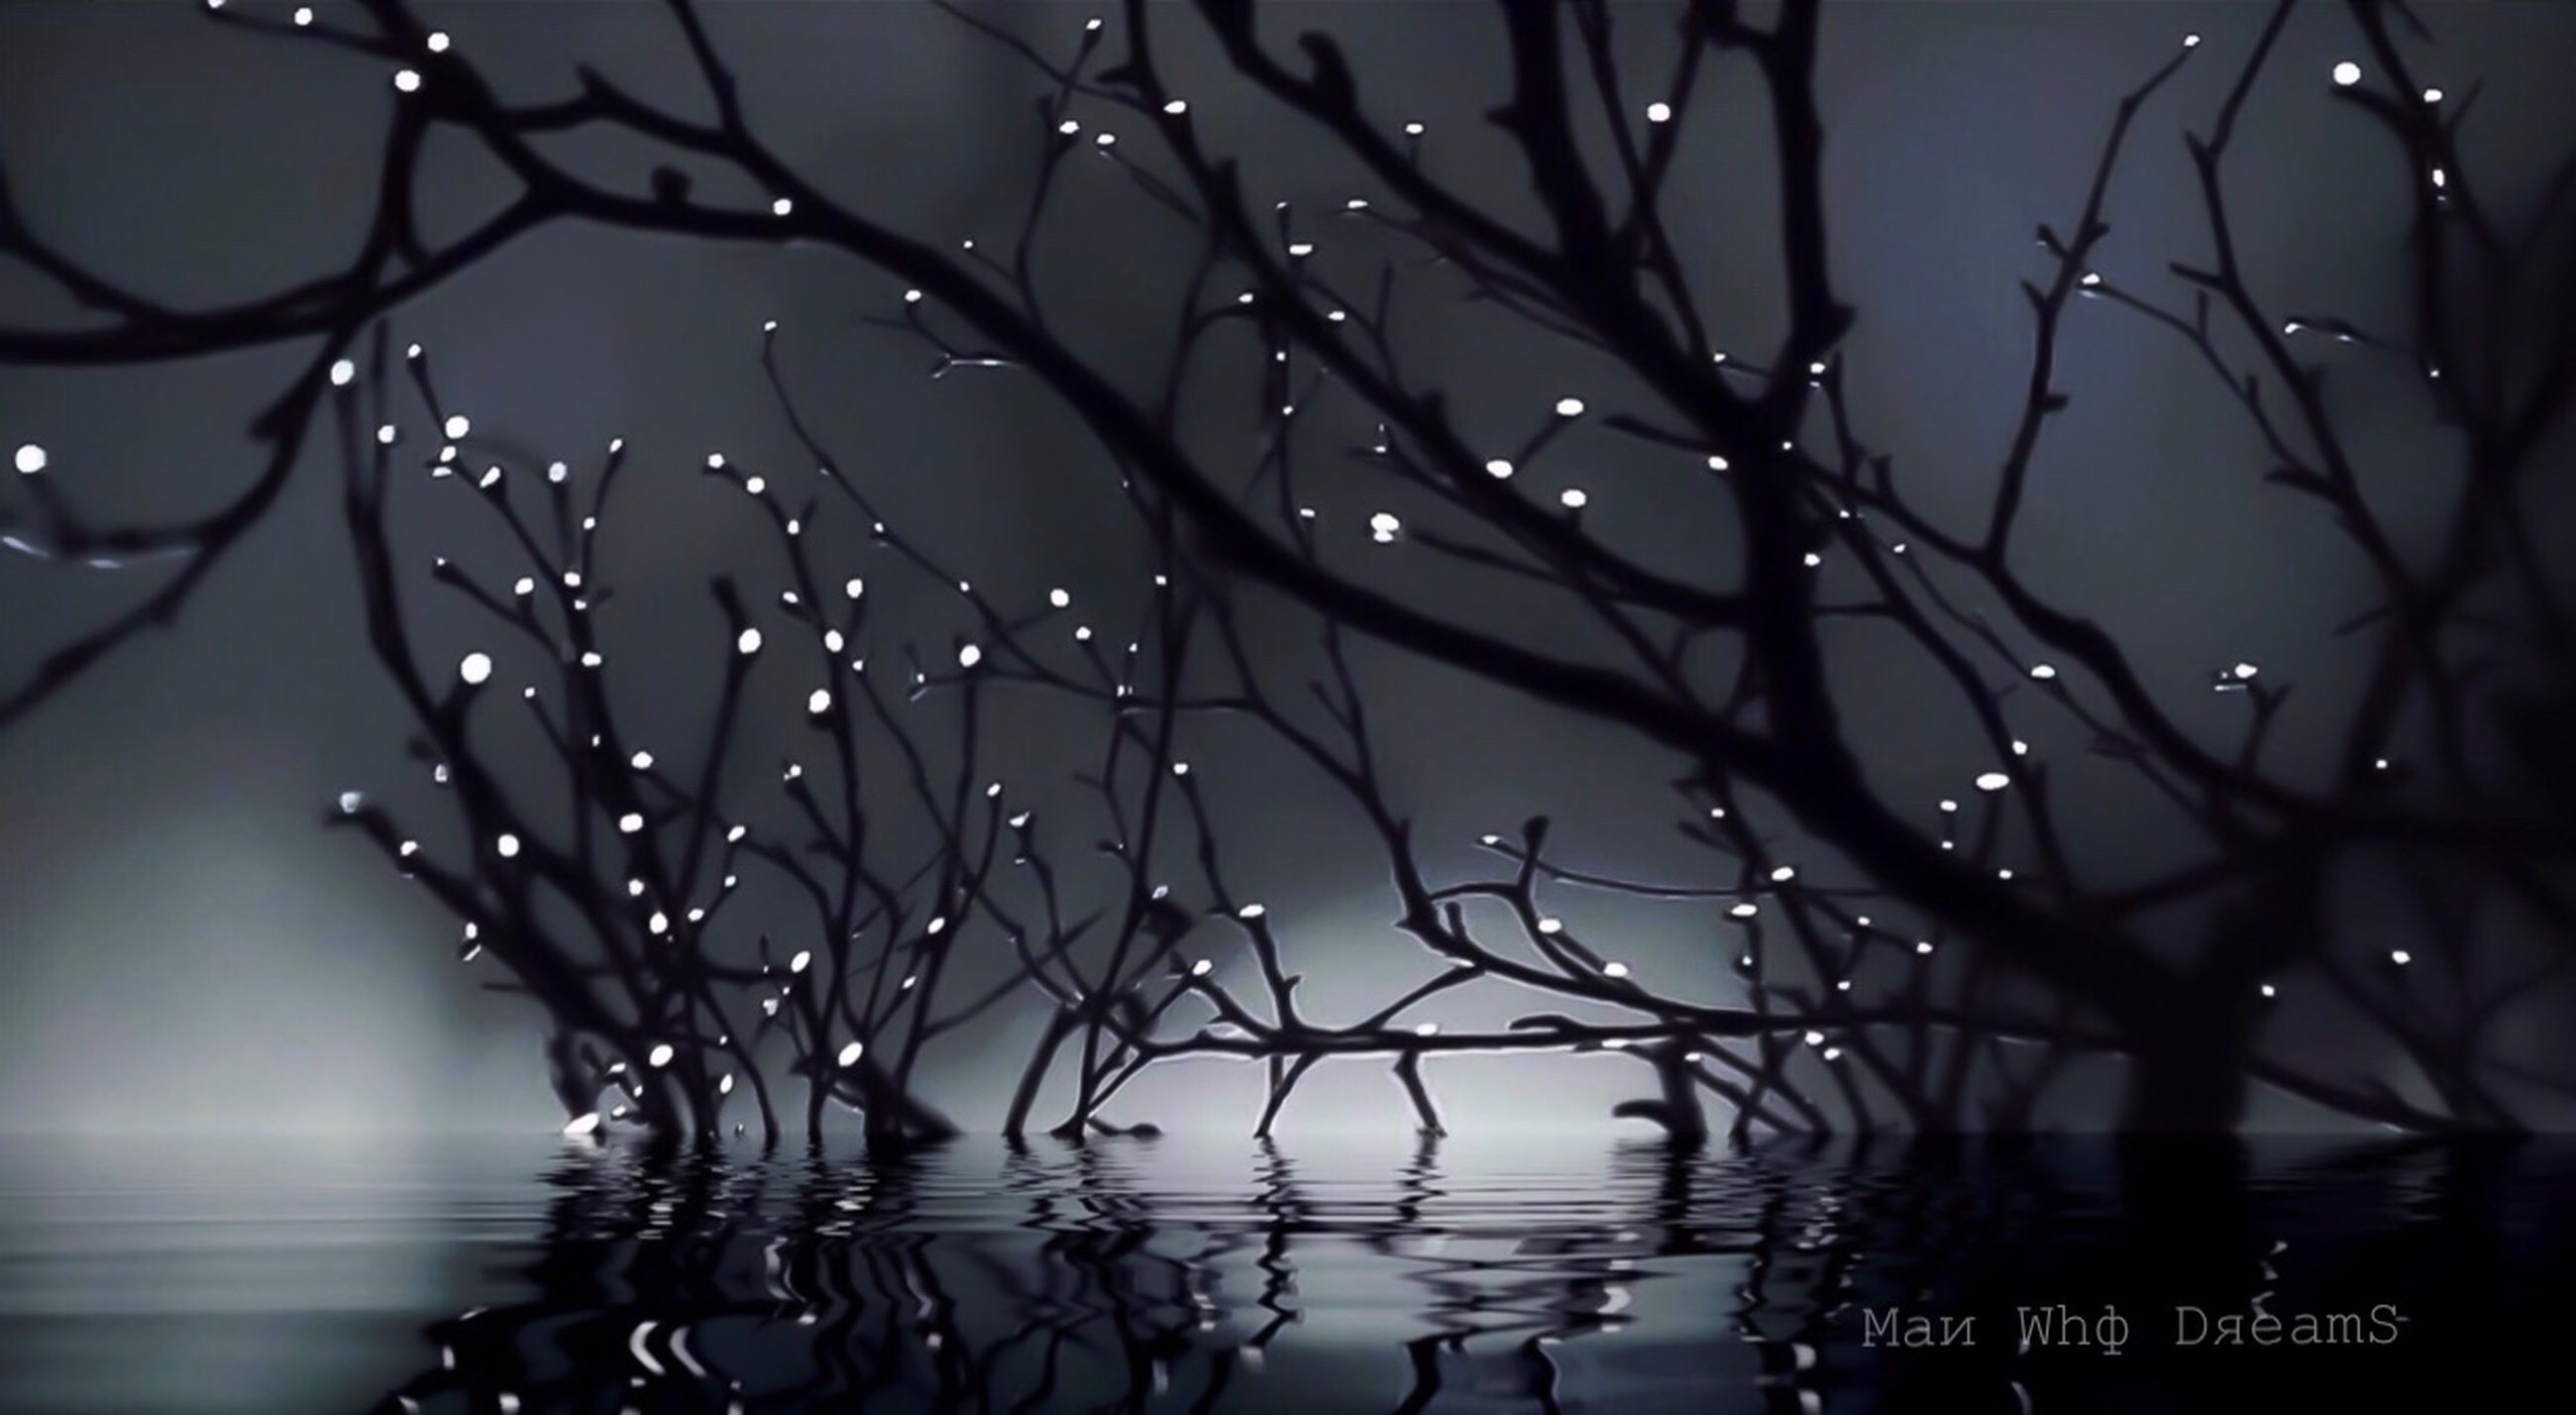 tree, water, no people, branch, bare tree, plant, nature, focus on foreground, selective focus, close-up, beauty in nature, drop, reflection, tranquility, outdoors, night, lake, sky, silhouette, complexity